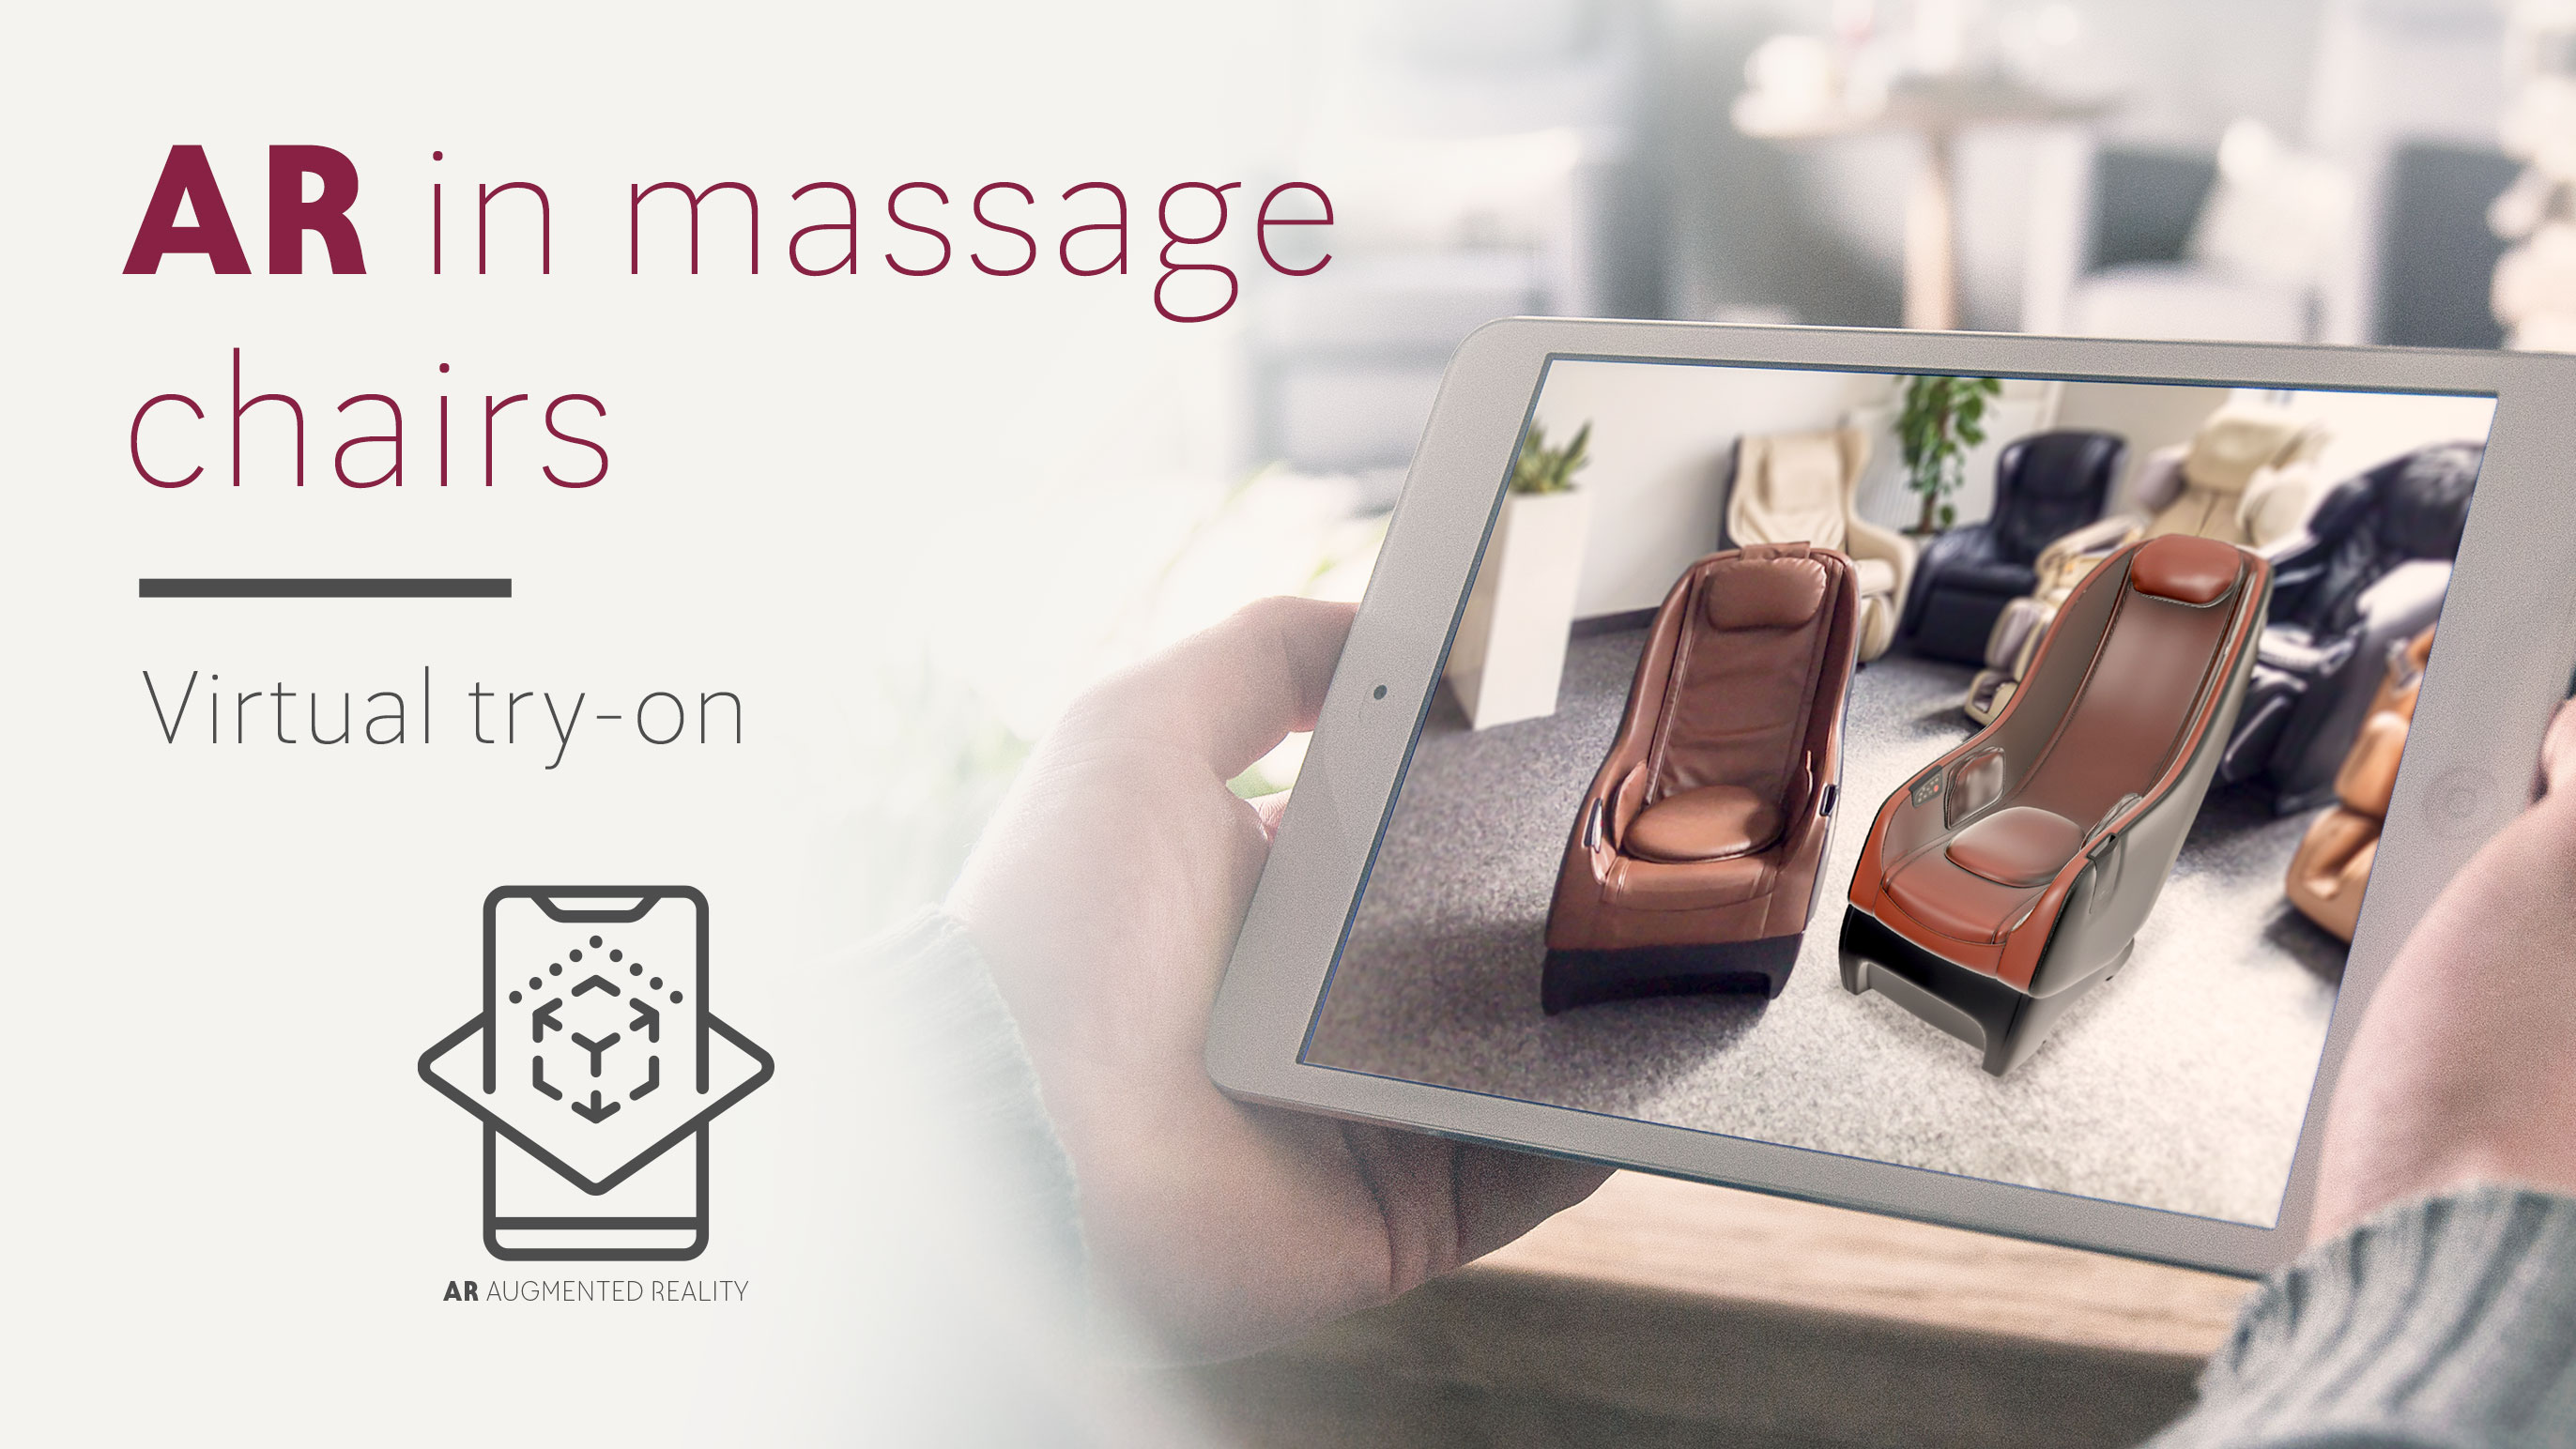 AR - Augmented Reality, virtual try-on in massage chairs - Rest Lords-slider